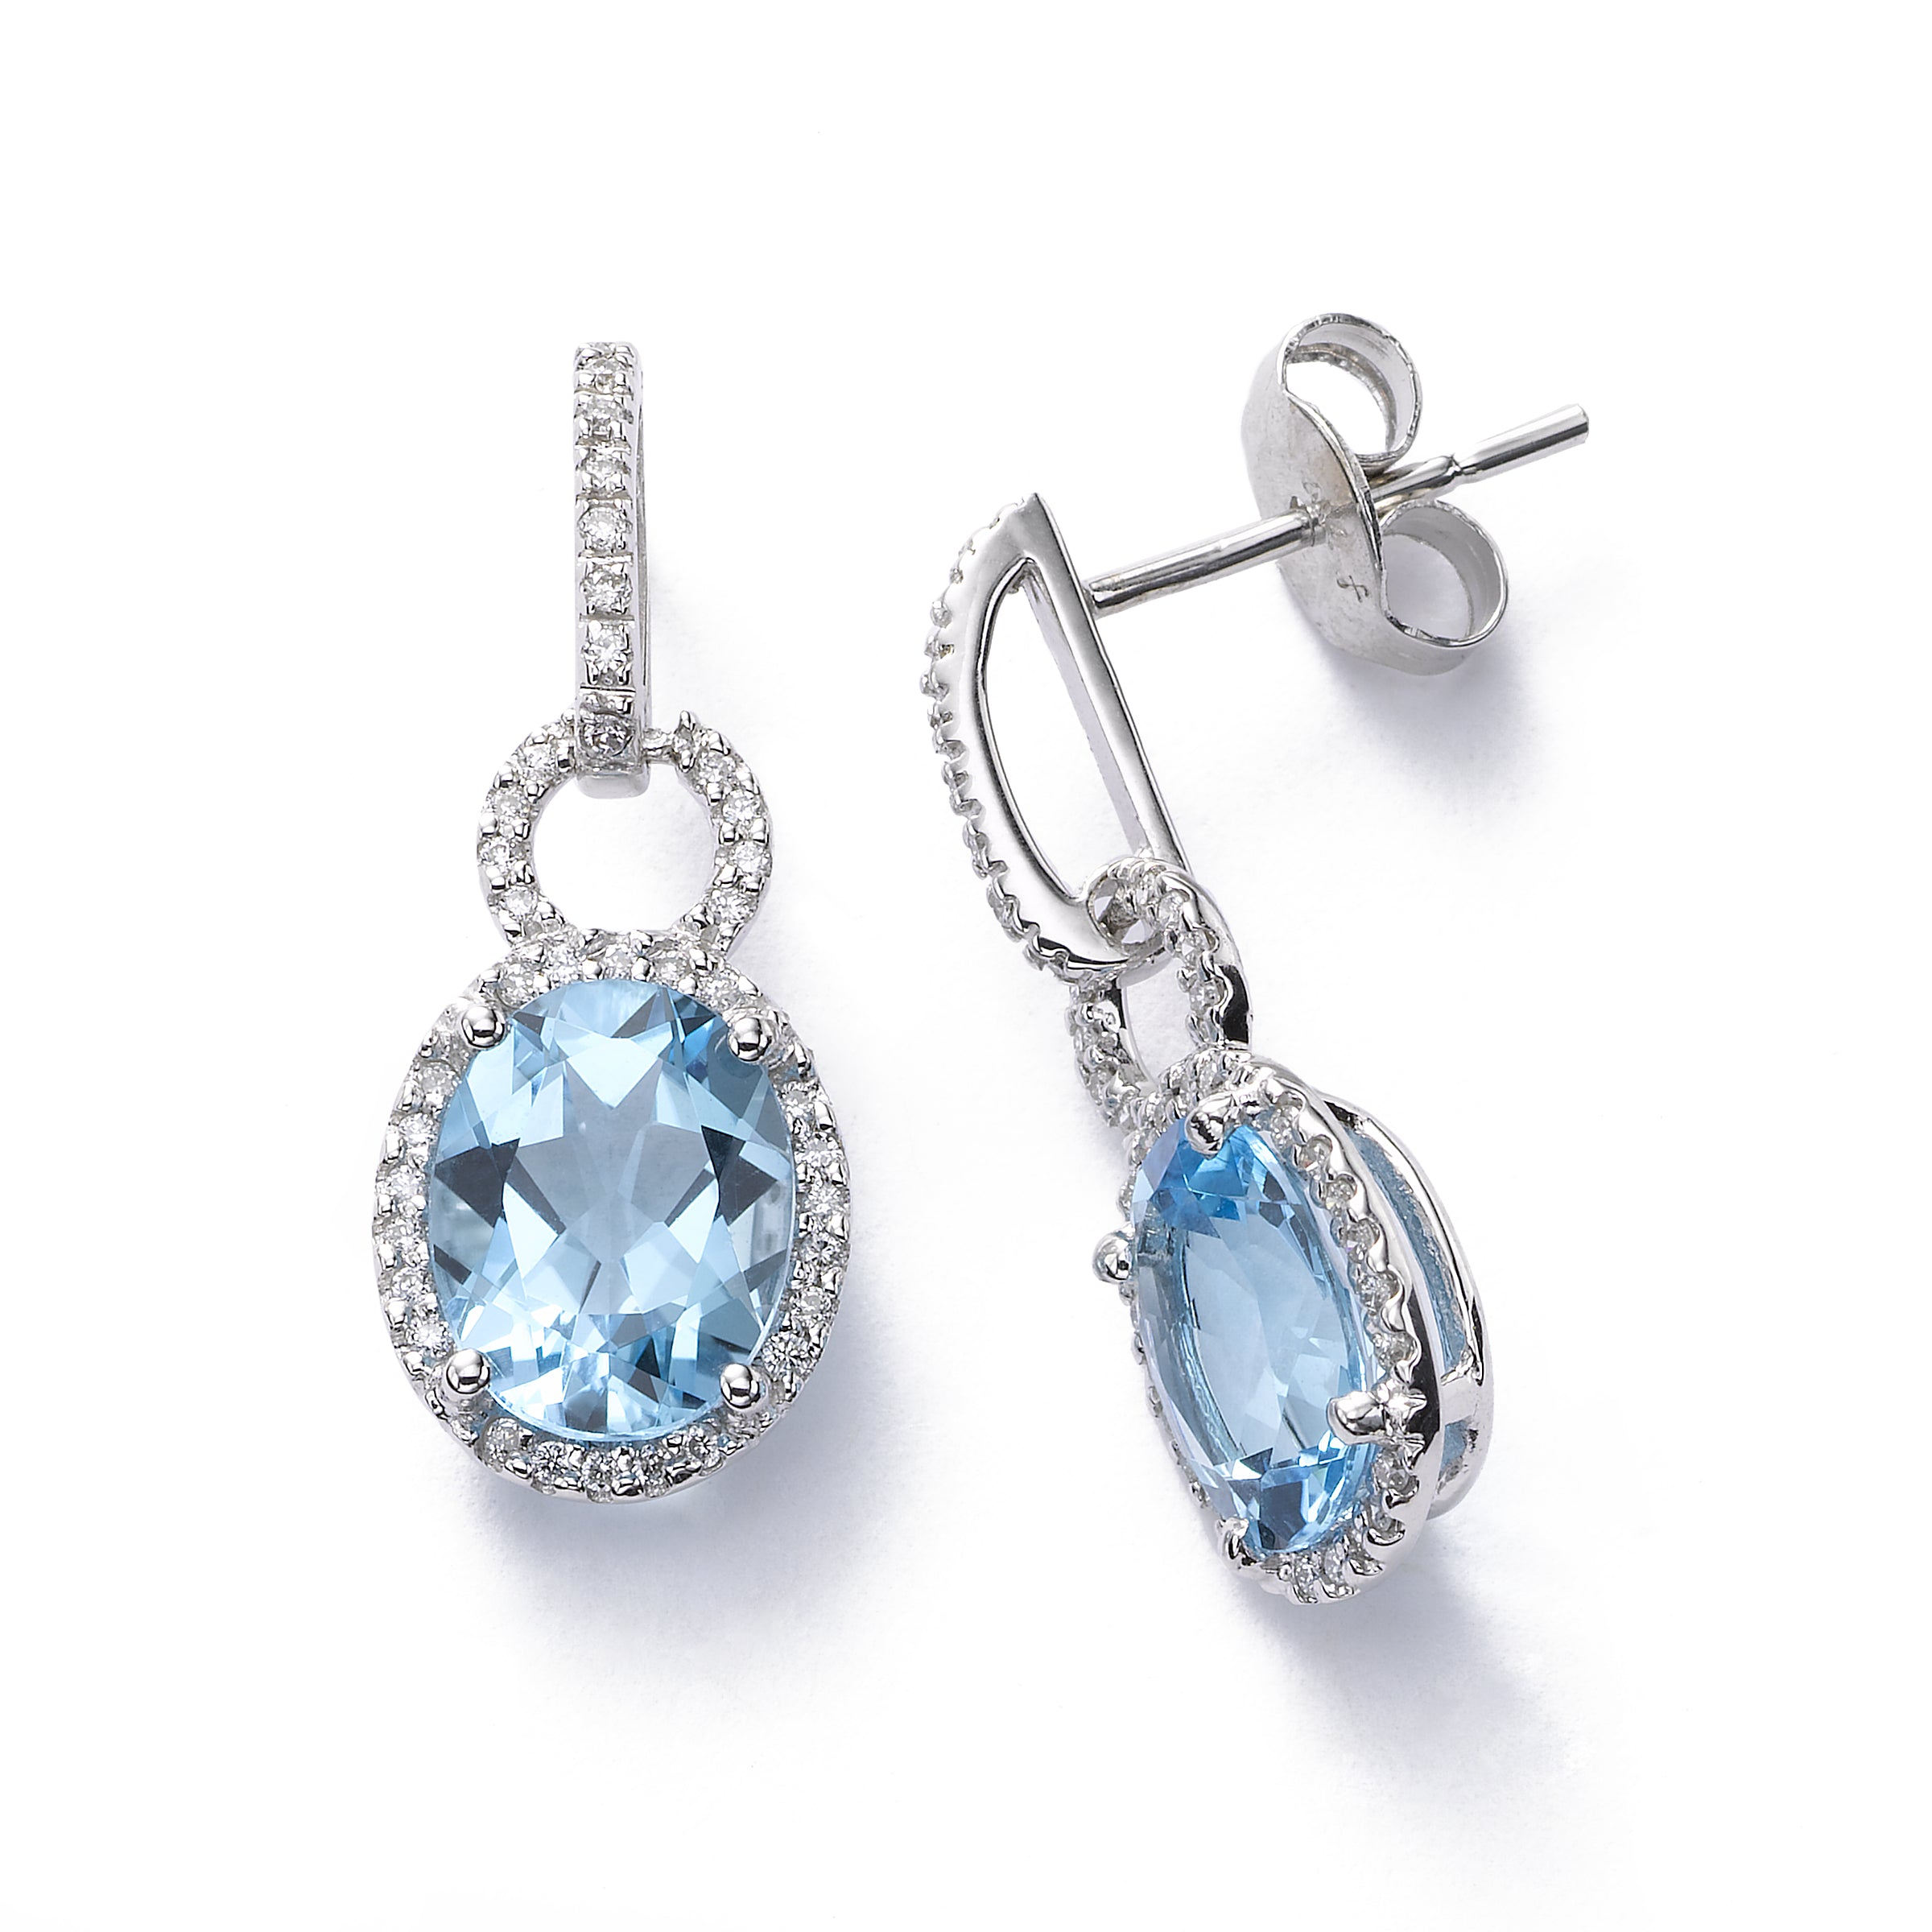 Blue Topaz and Diamond Earring, 14K White Gold